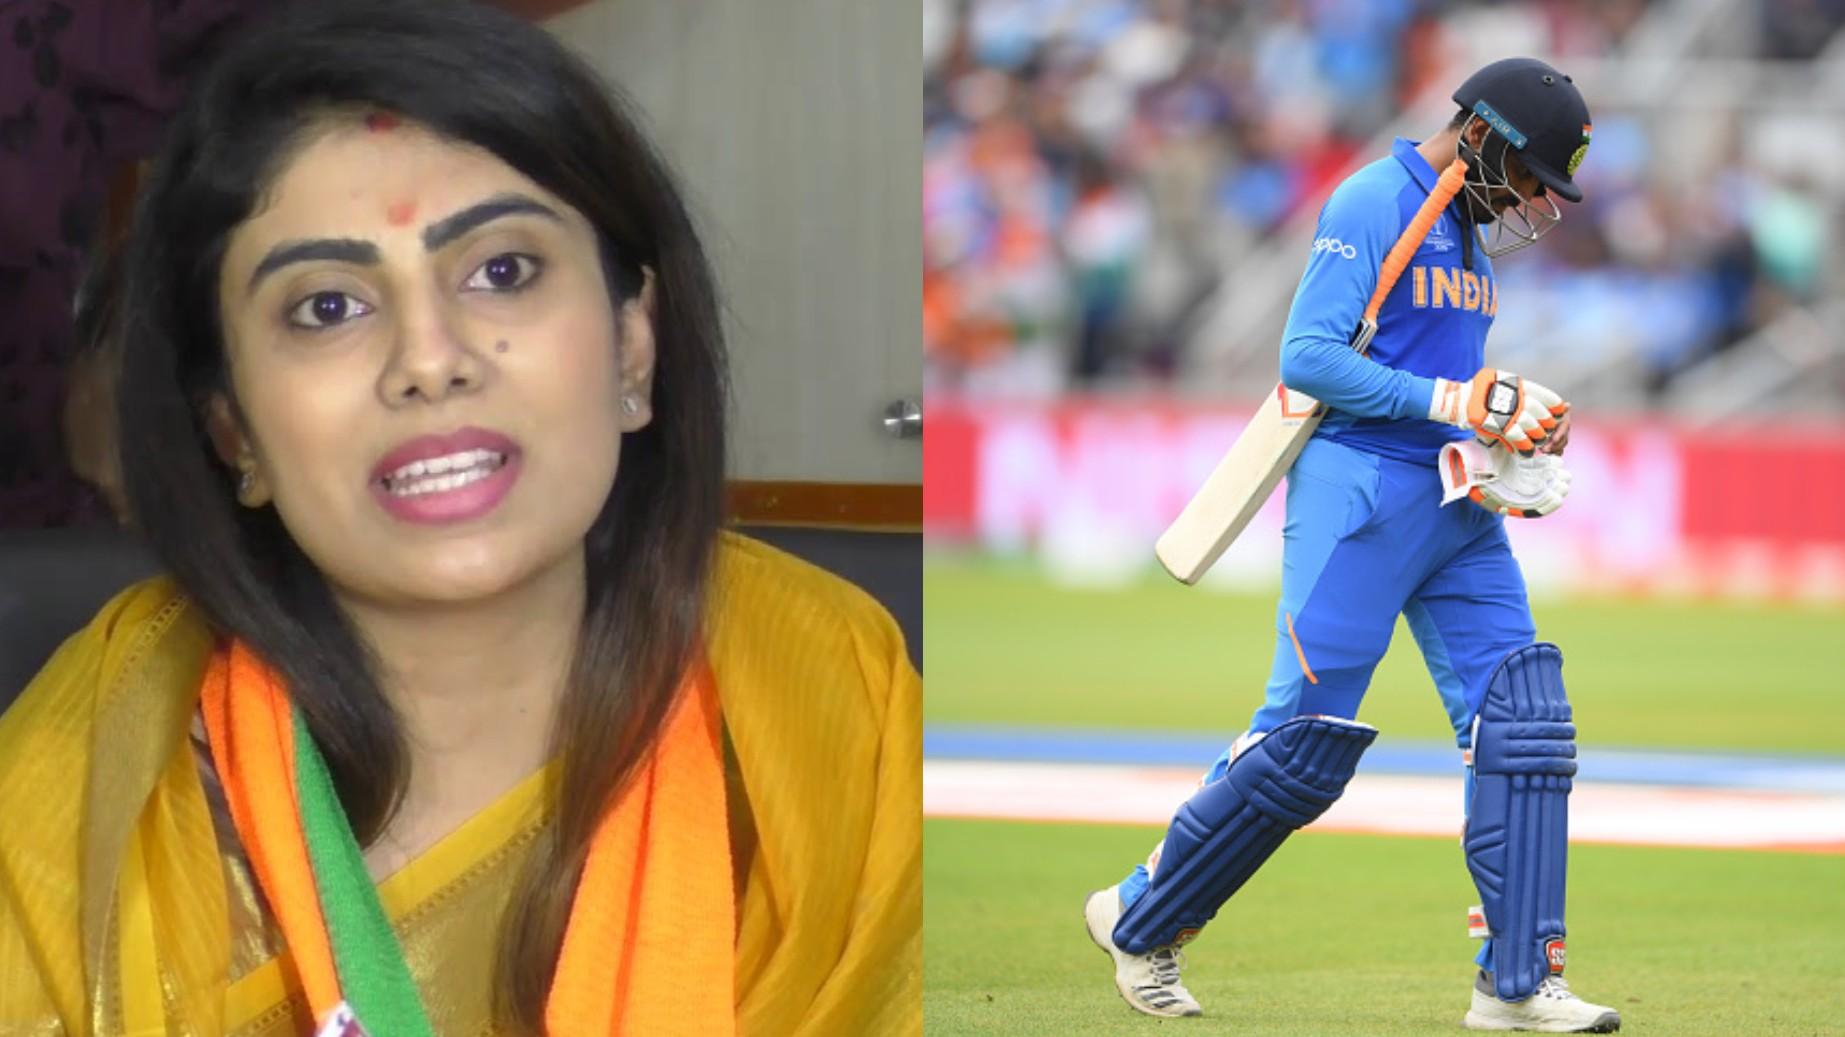 CWC 2019: Ravindra Jadeja was inconsolable after the loss to New Zealand in semis, reveals wife Rivaba